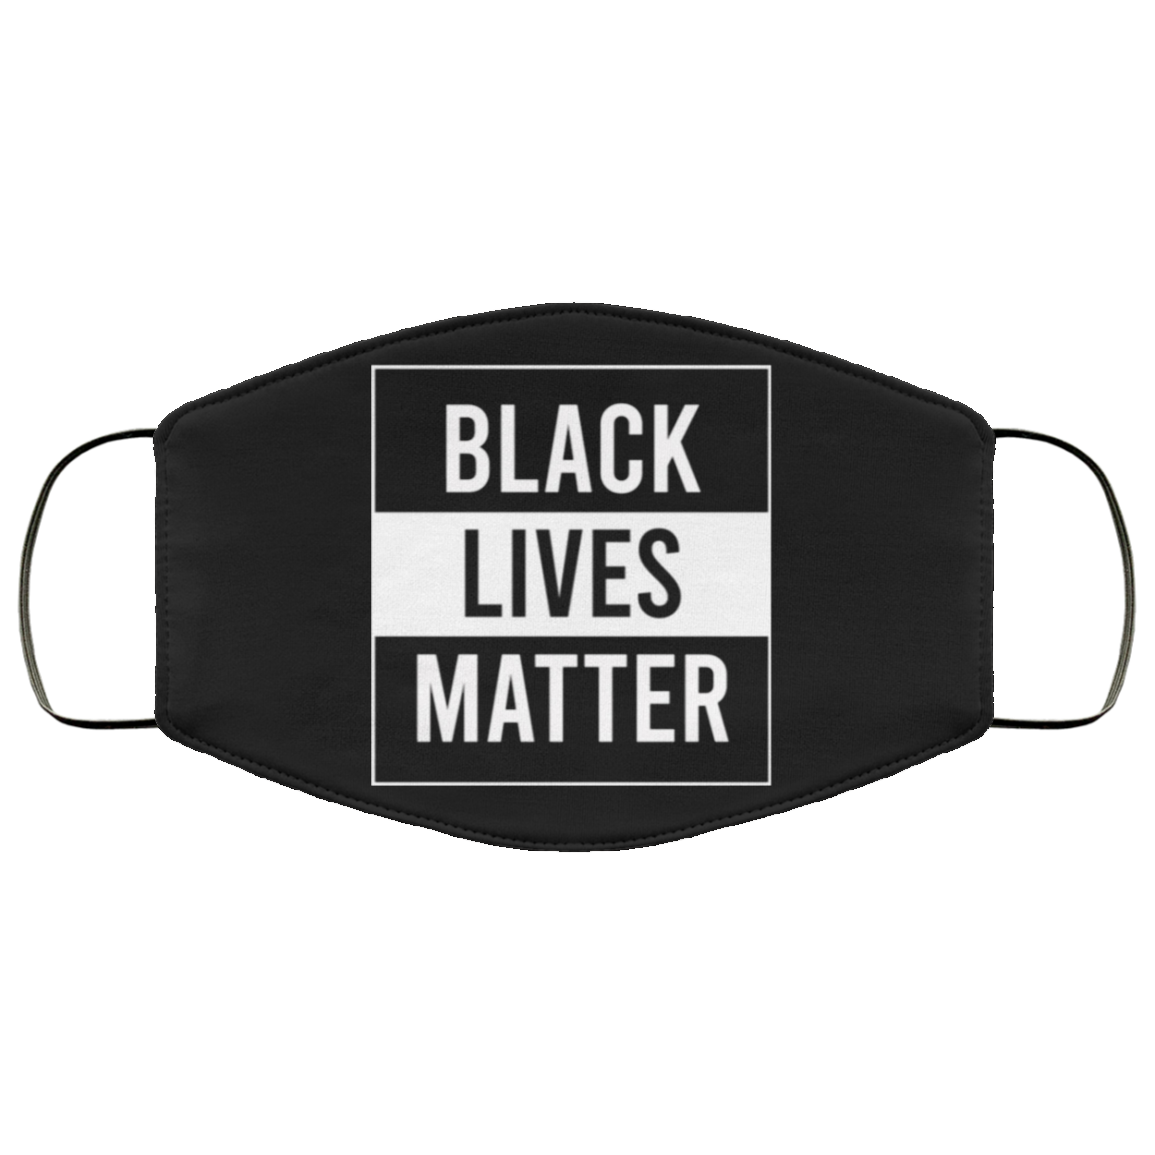 Black Lives Matter Face Masks George Floyd Stop Police Brutality Face Masks Protest